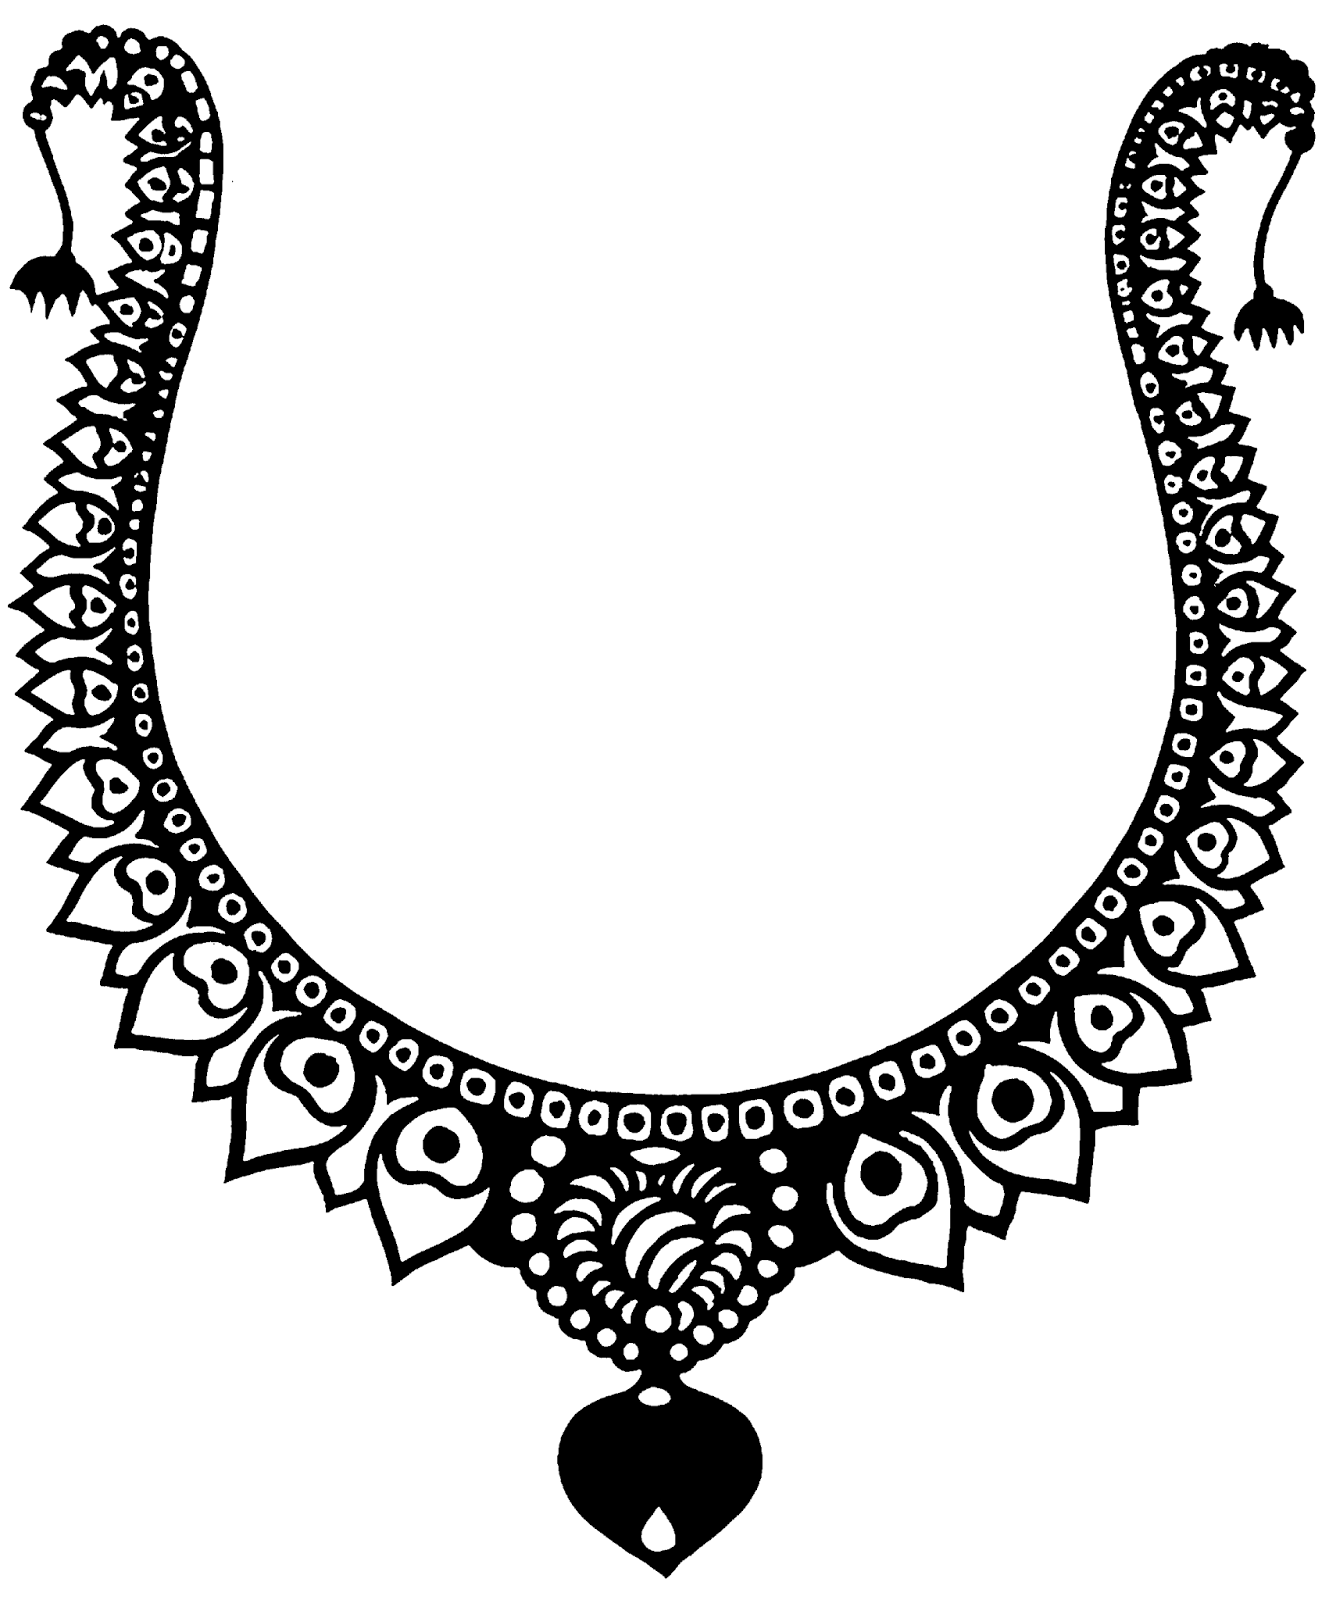 Clipart jewellers new collection clipart black and white library 52+ Jewellery Clipart | ClipartLook clipart black and white library